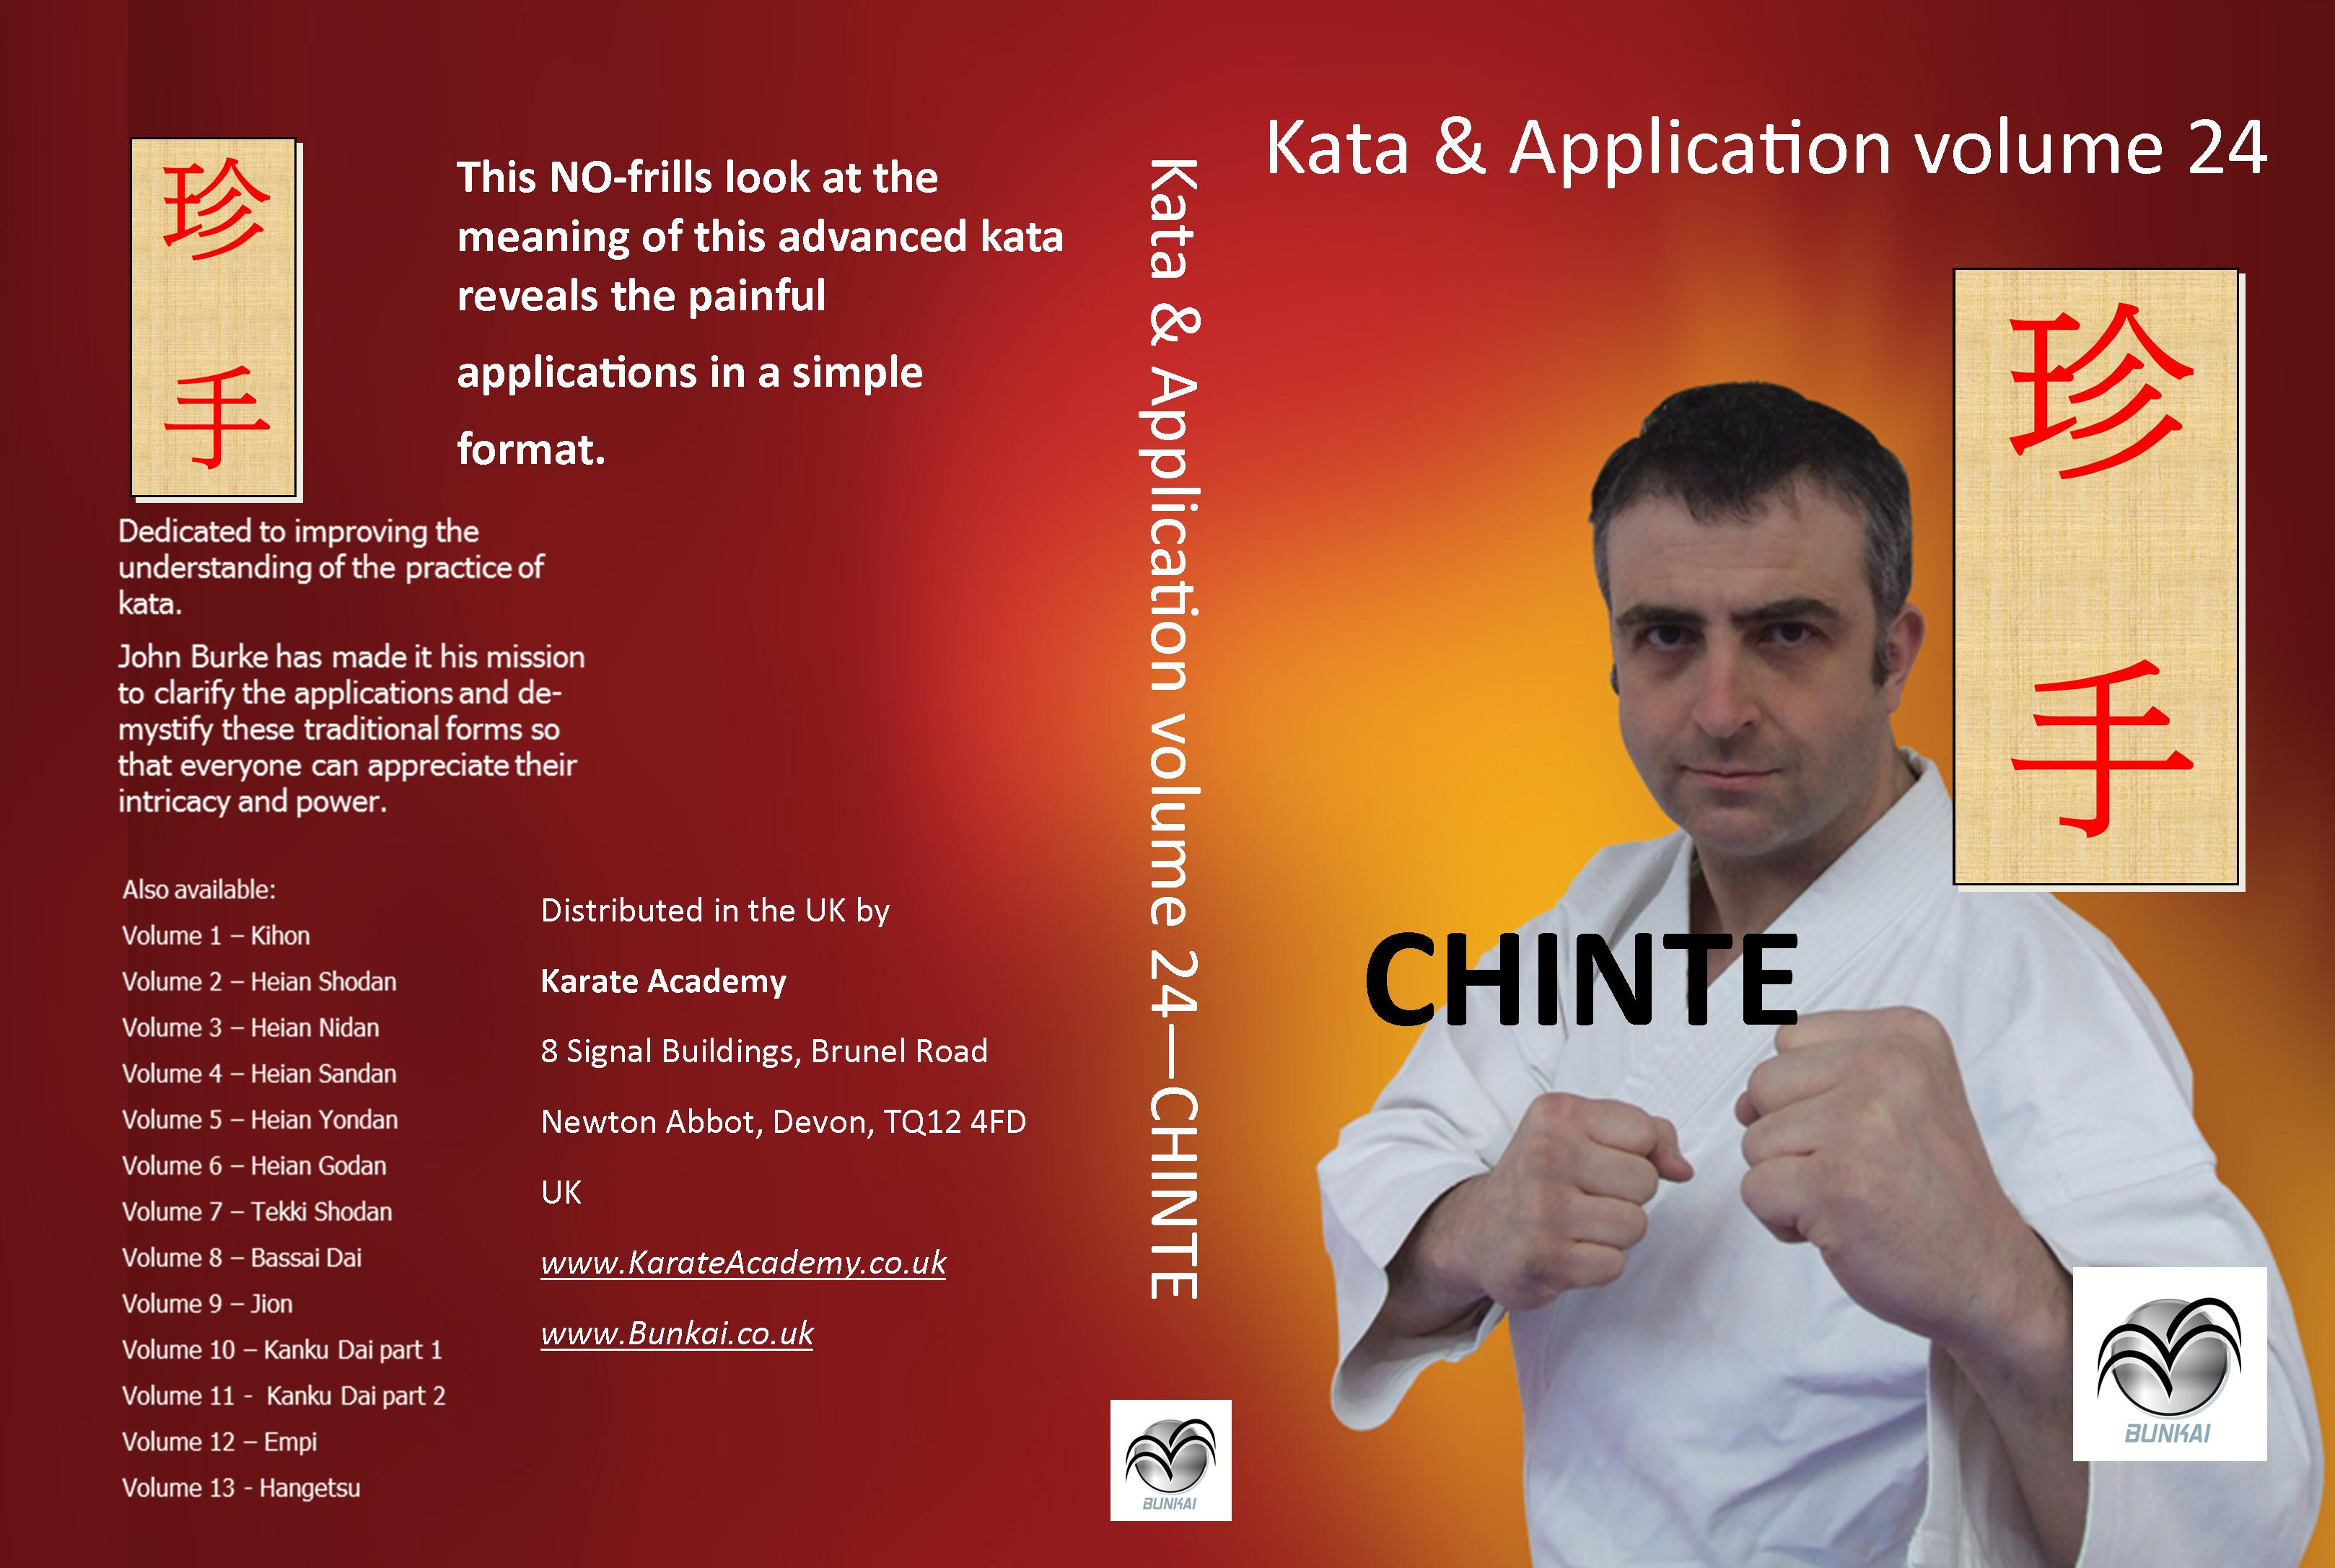 CHINTE APPLICATIONS VIDEO